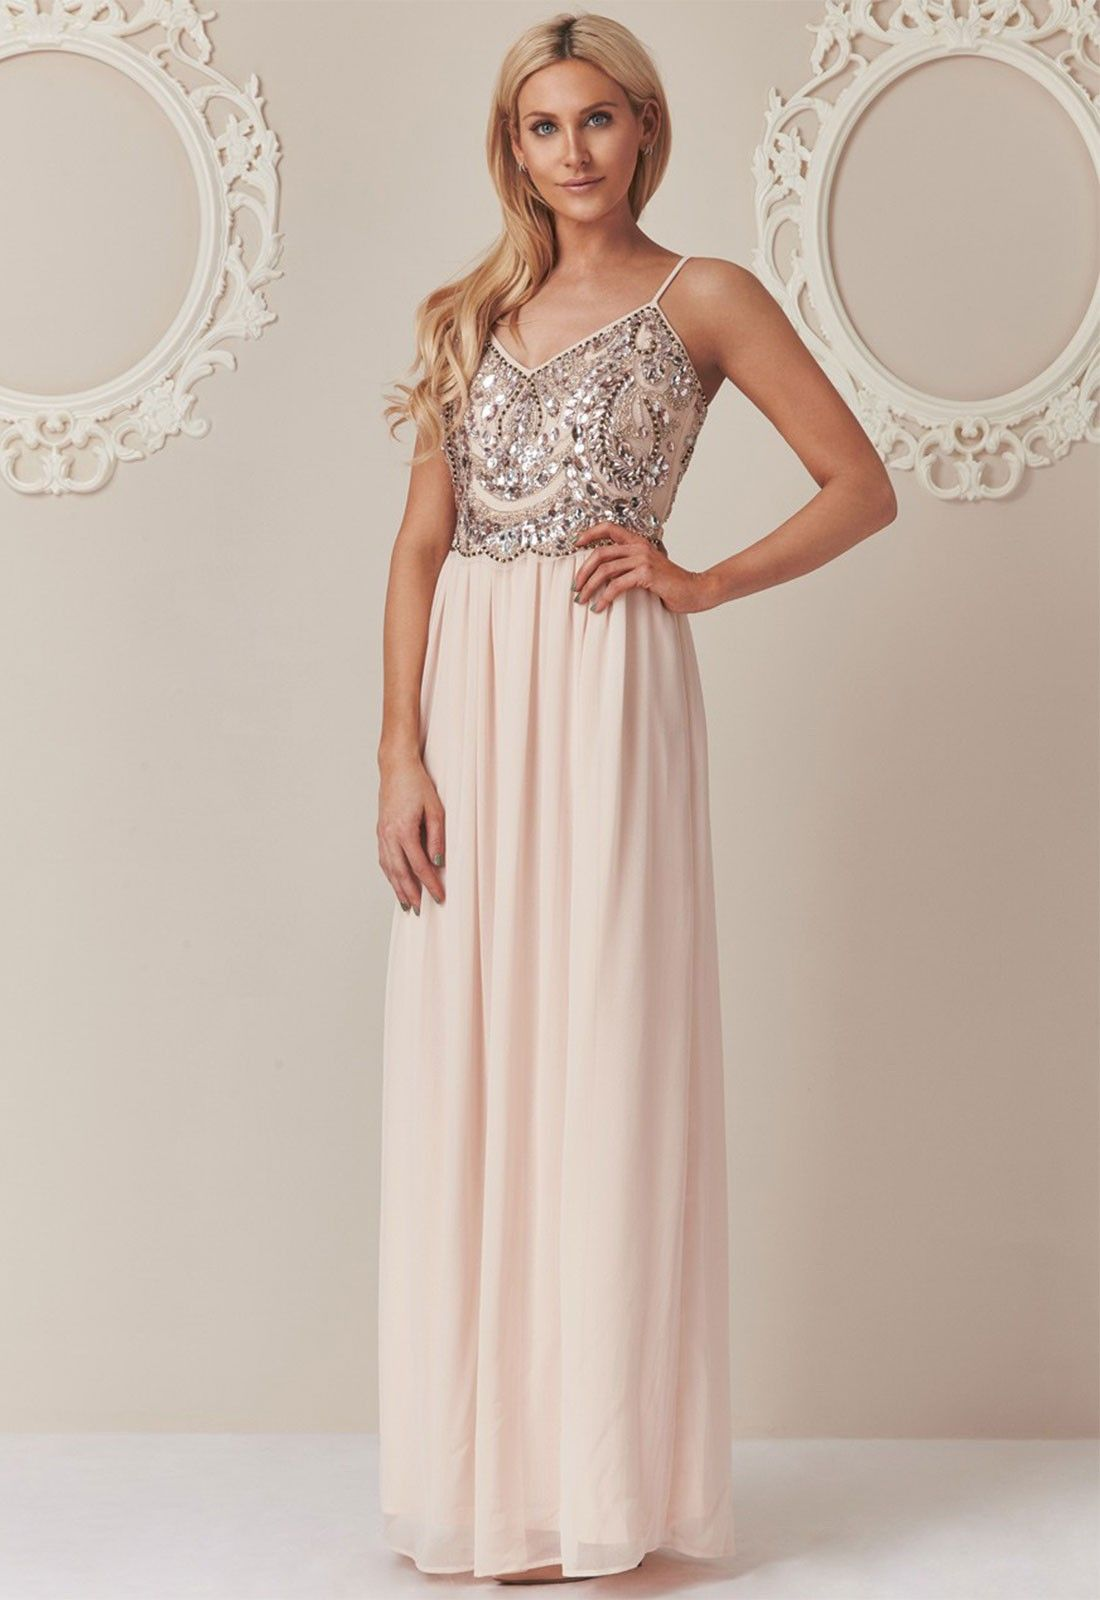 83bc7630453 If you re looking for a showstopping dress for your upcoming prom